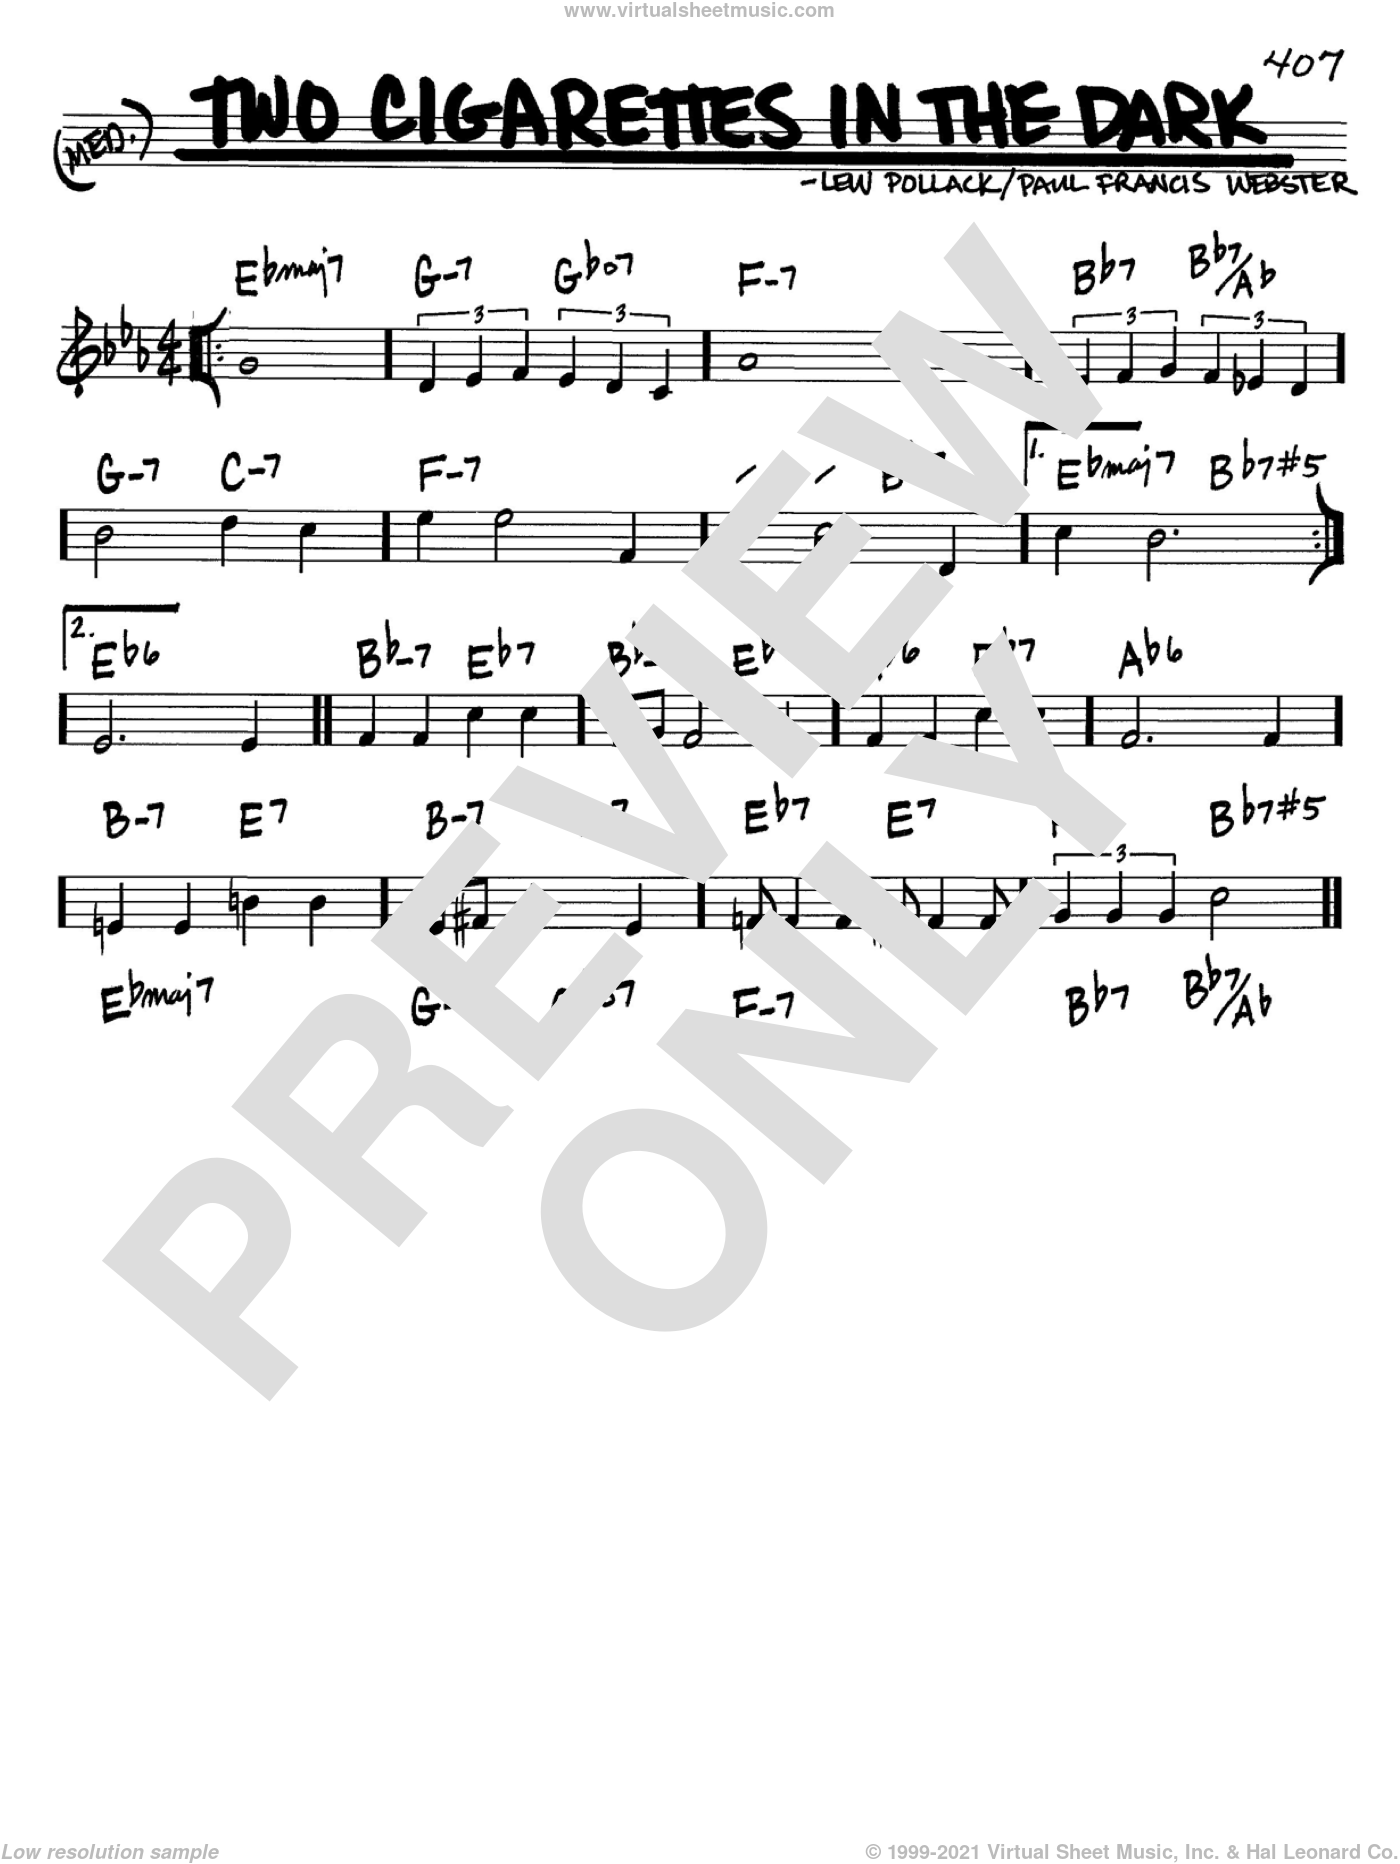 Two Cigarettes In The Dark sheet music for voice and other instruments (C) by Lew Pollack